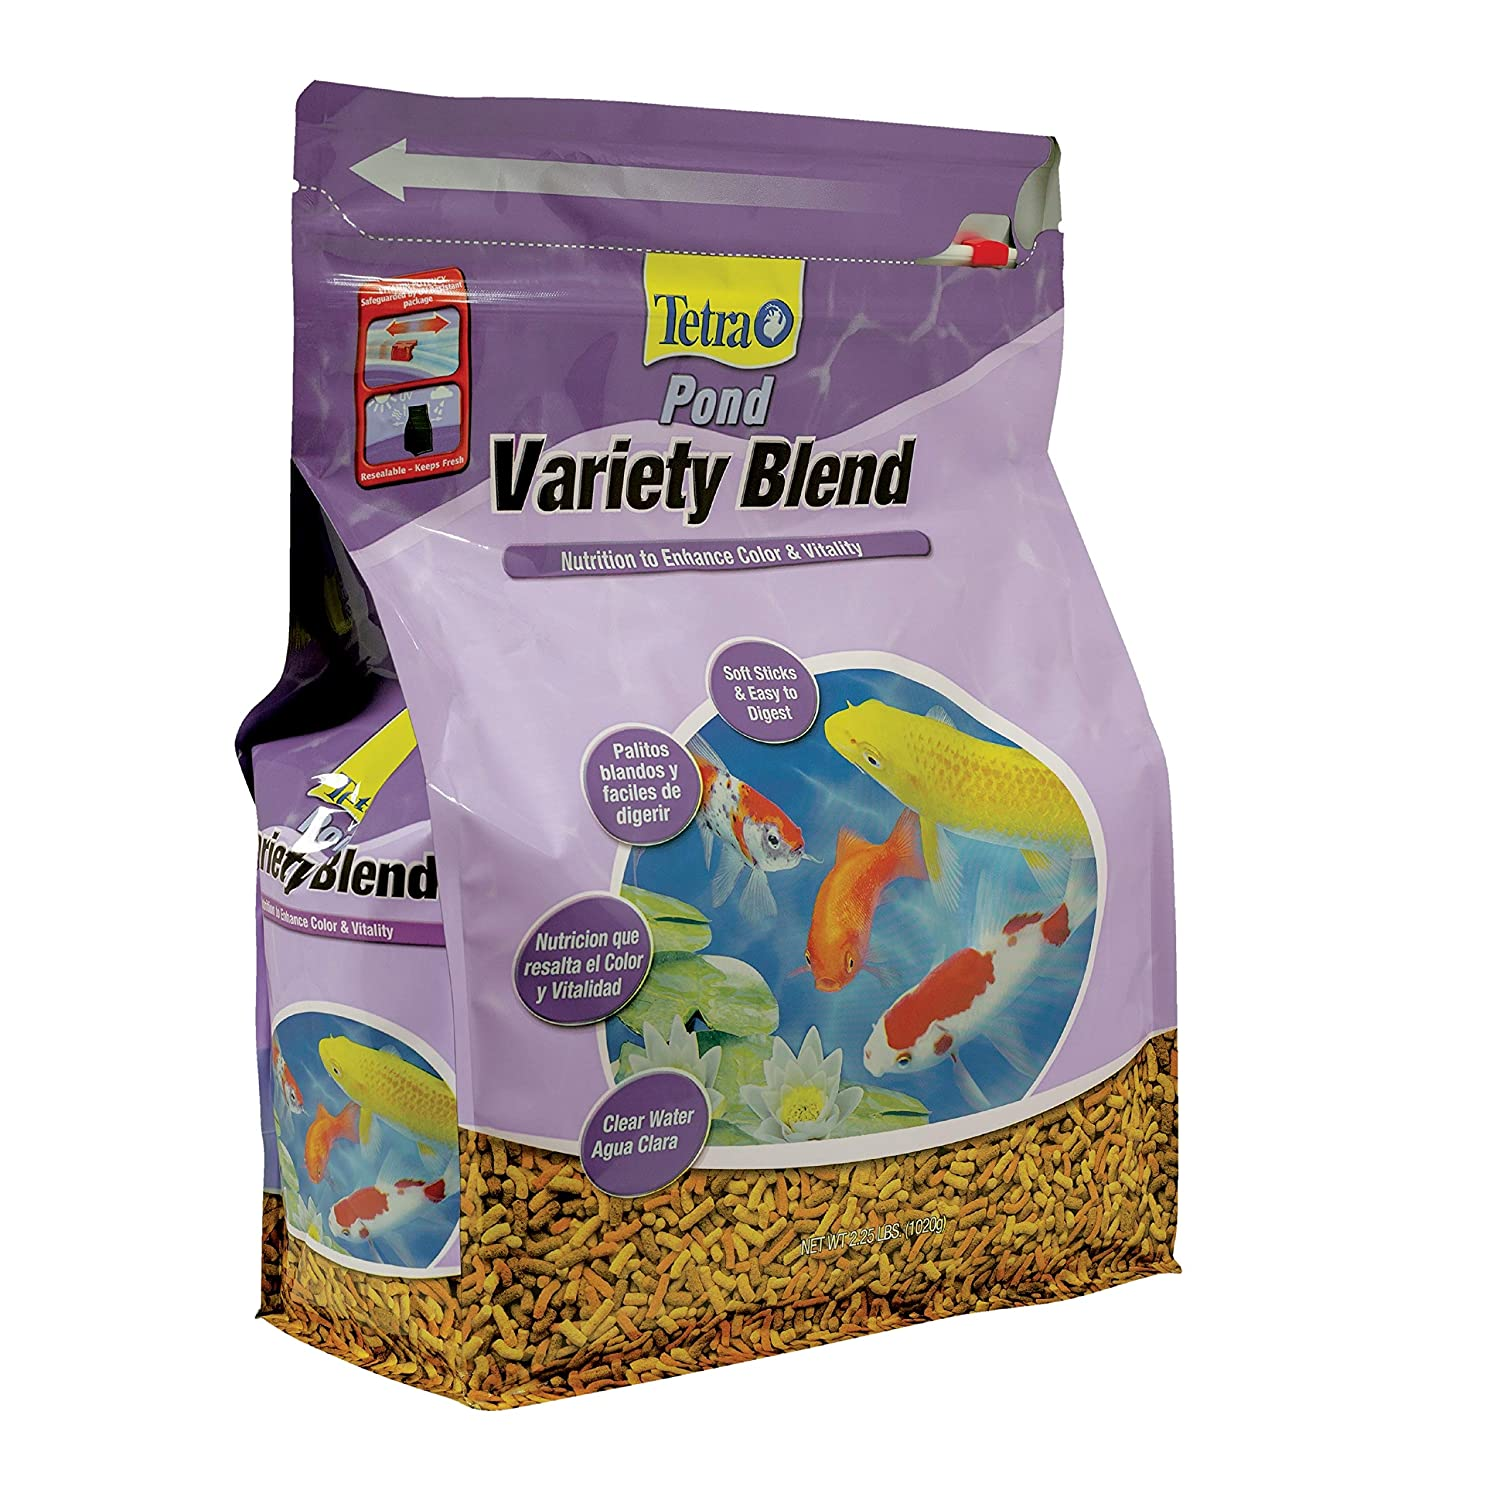 TetraPond Variety Blend Fish Food to Enhance Color and Vitality